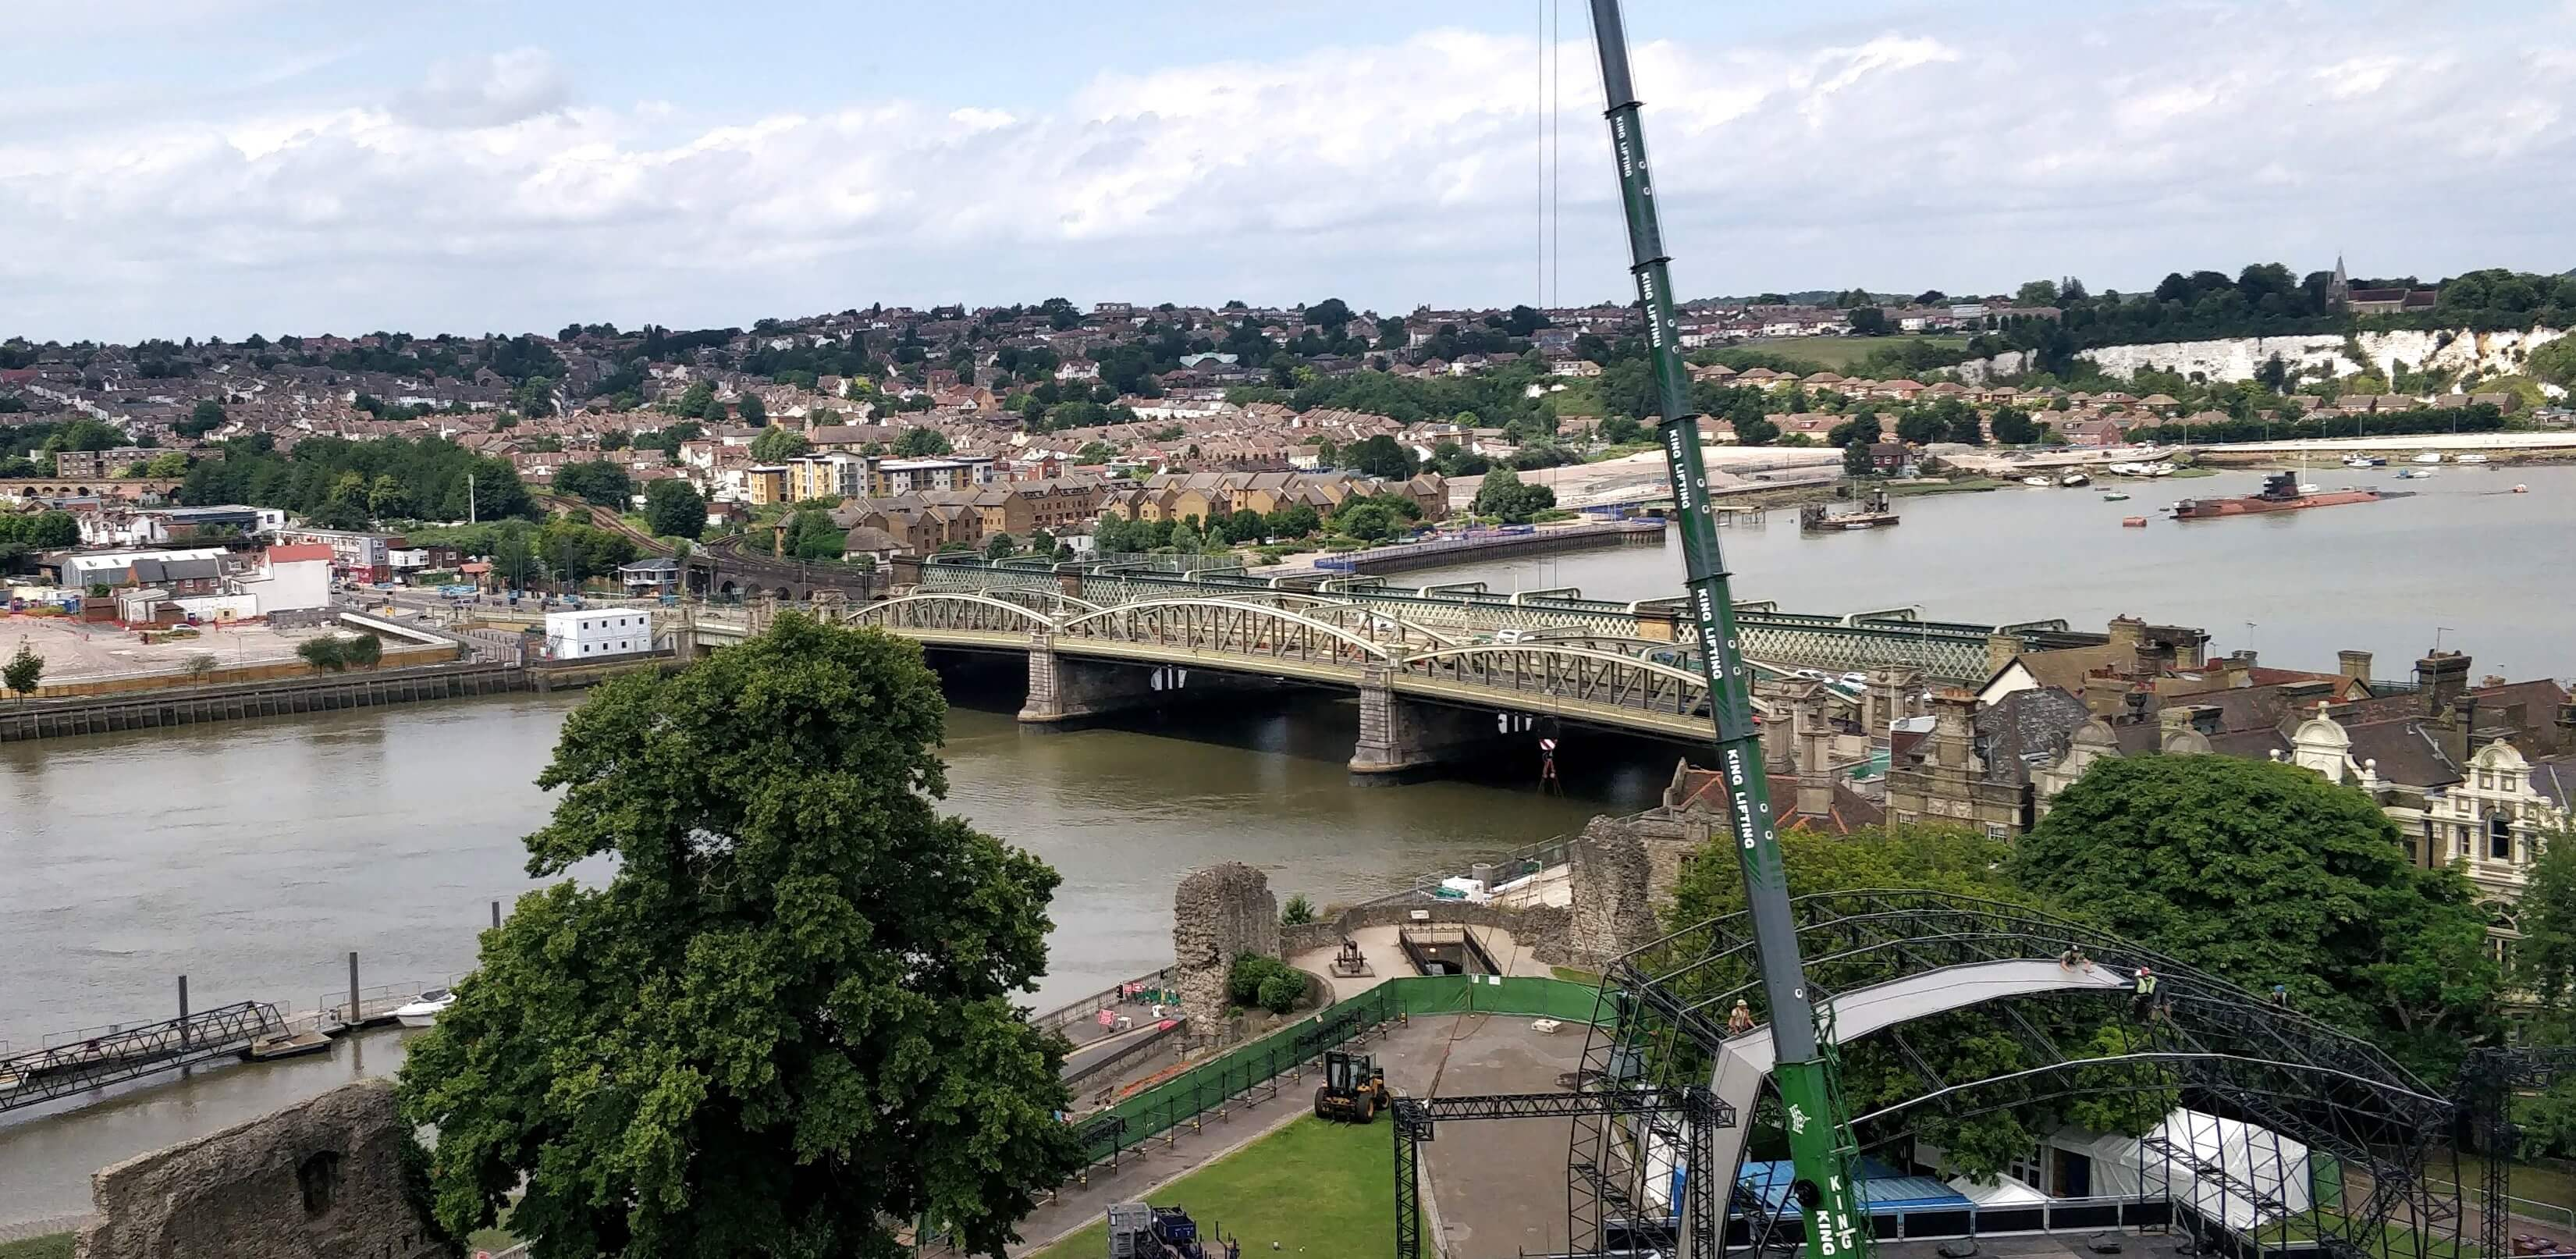 The bridge over the river Medway at Rochester